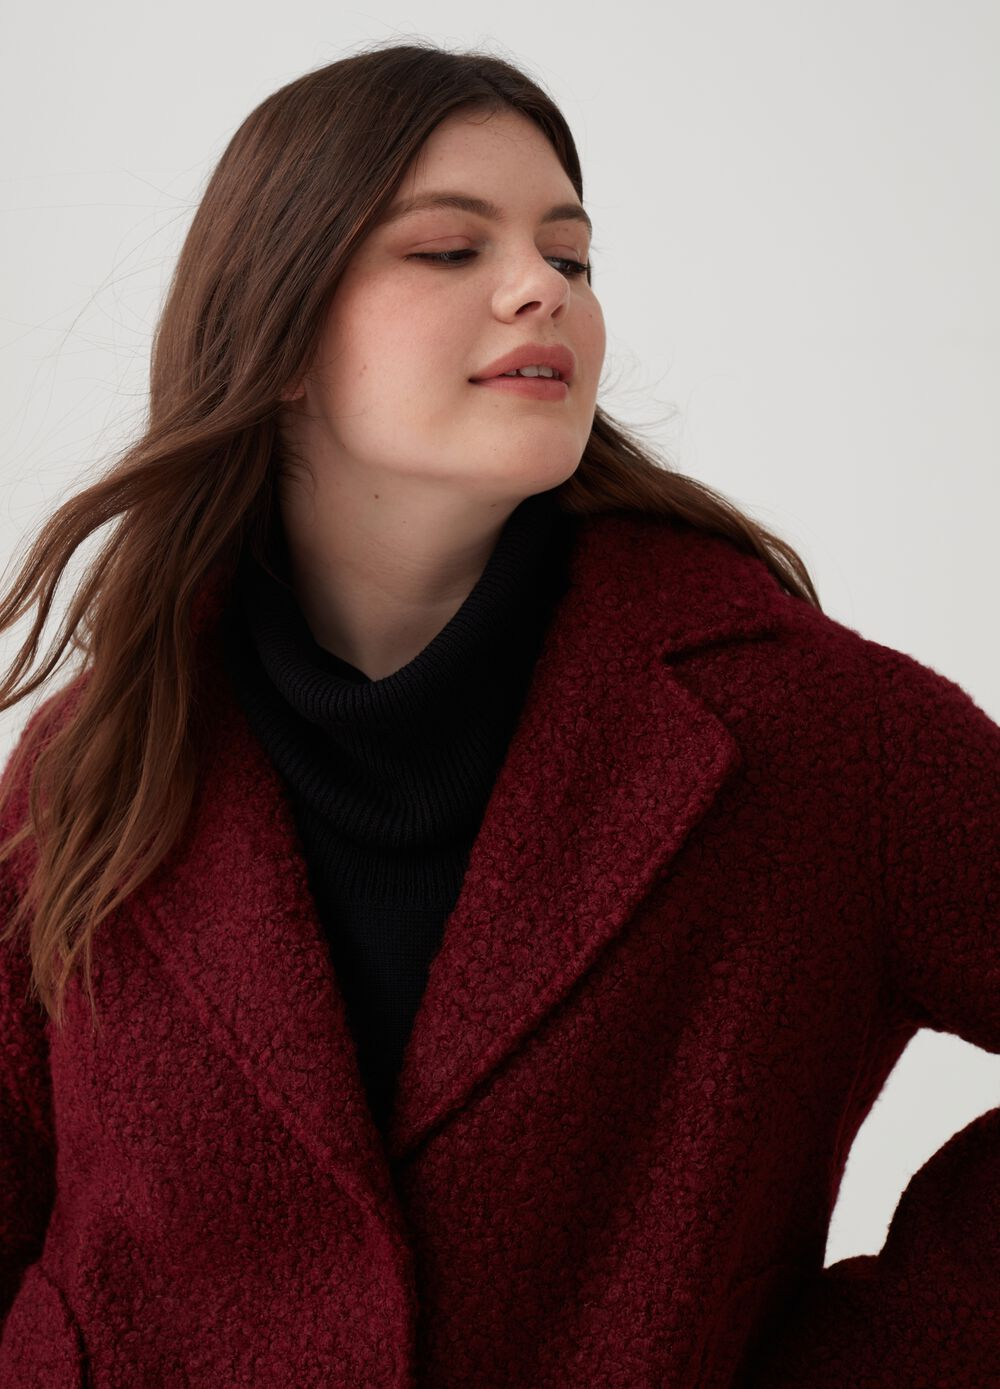 Curvy coat with lapels and bouclé fabric